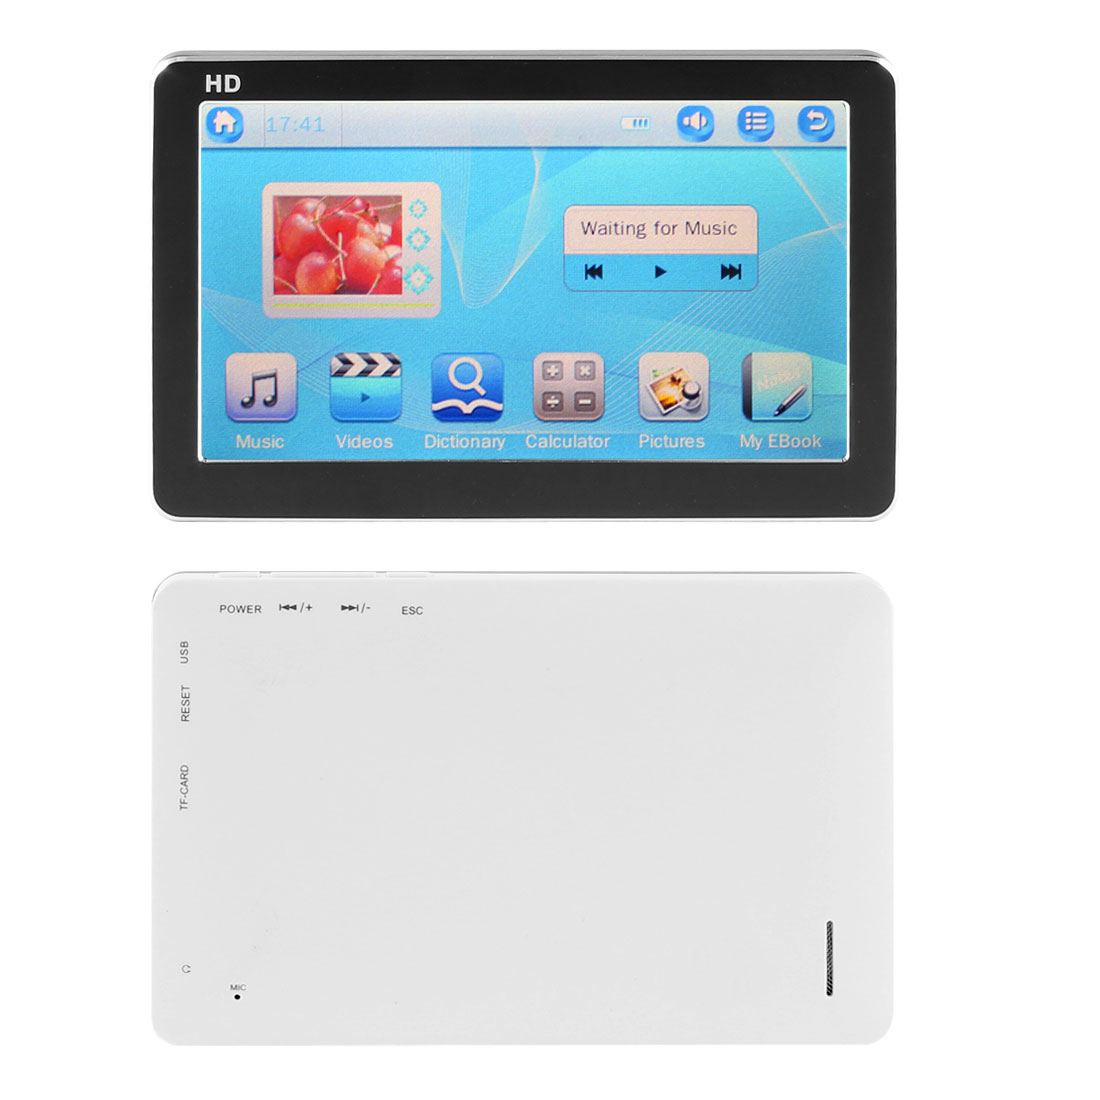 "US Plug 110V-250V 16GB 4.3"" HD Touch Screen MP3 MP4 MP5 RMVB FLV TV Out Player 1080P White Black"